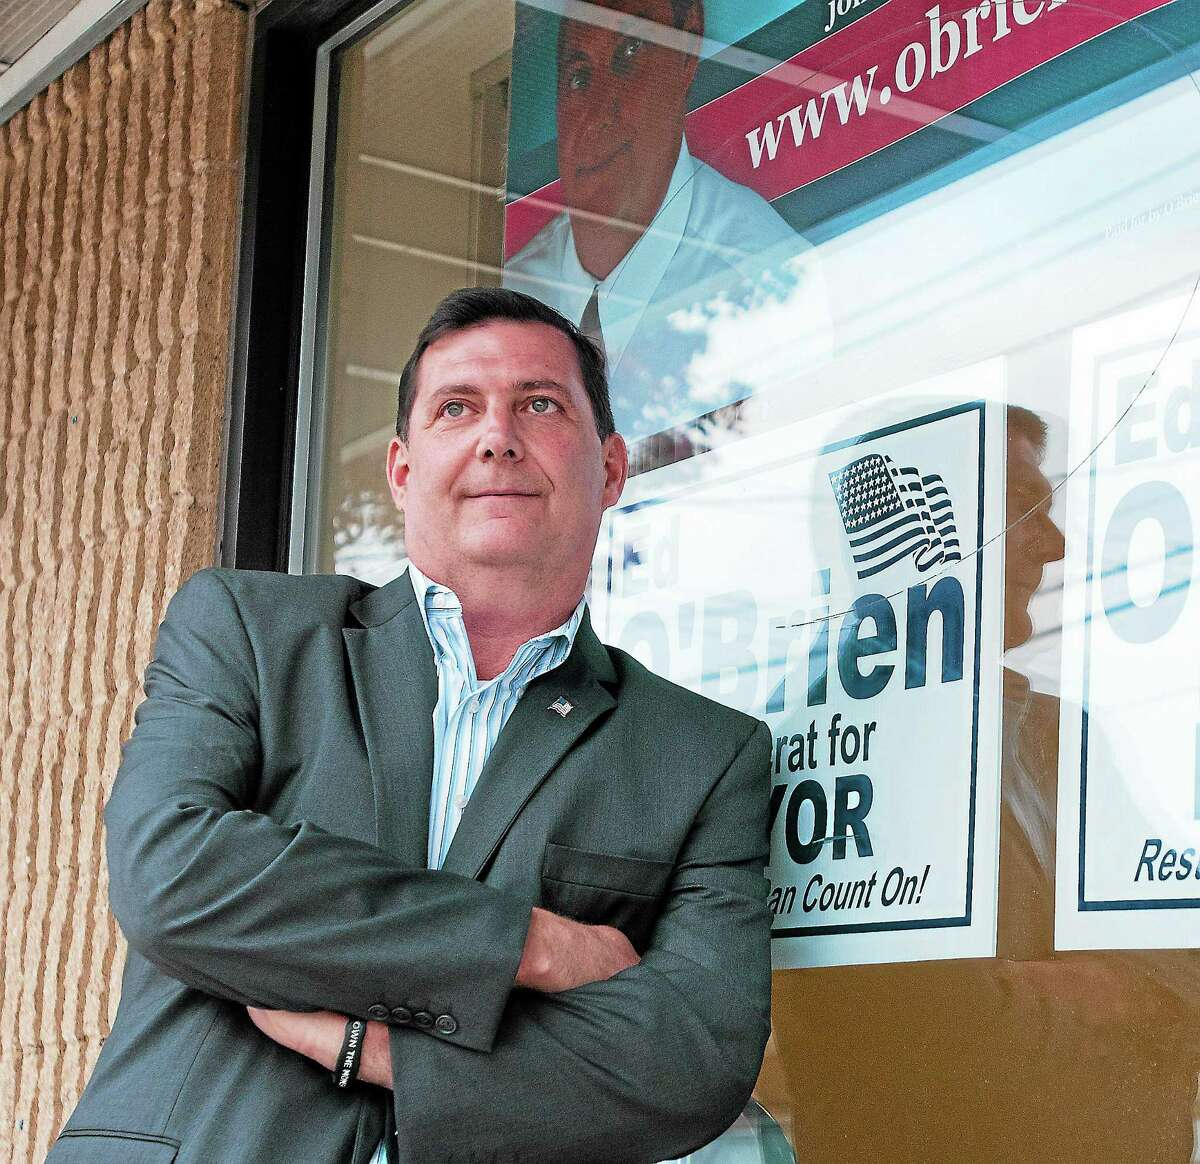 Then-West Haven Mayor elect Ed O'Brien at his campaign headquarters after winning the election in November 2013.